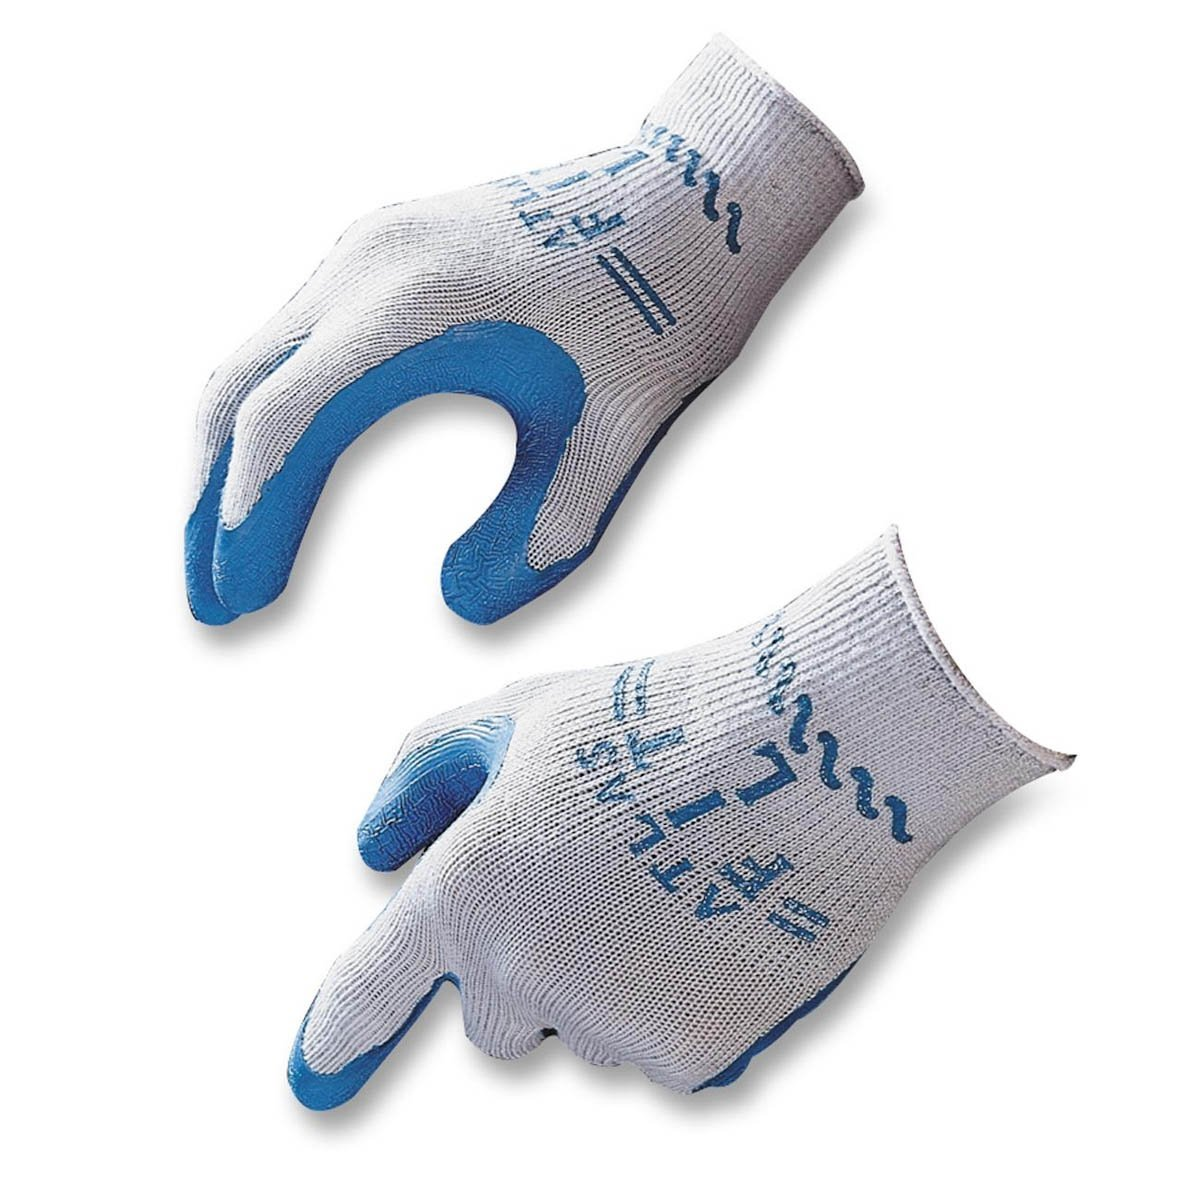 Extra-Thick Rubber Palm Work Gloves, X-Large - (1 Pair)